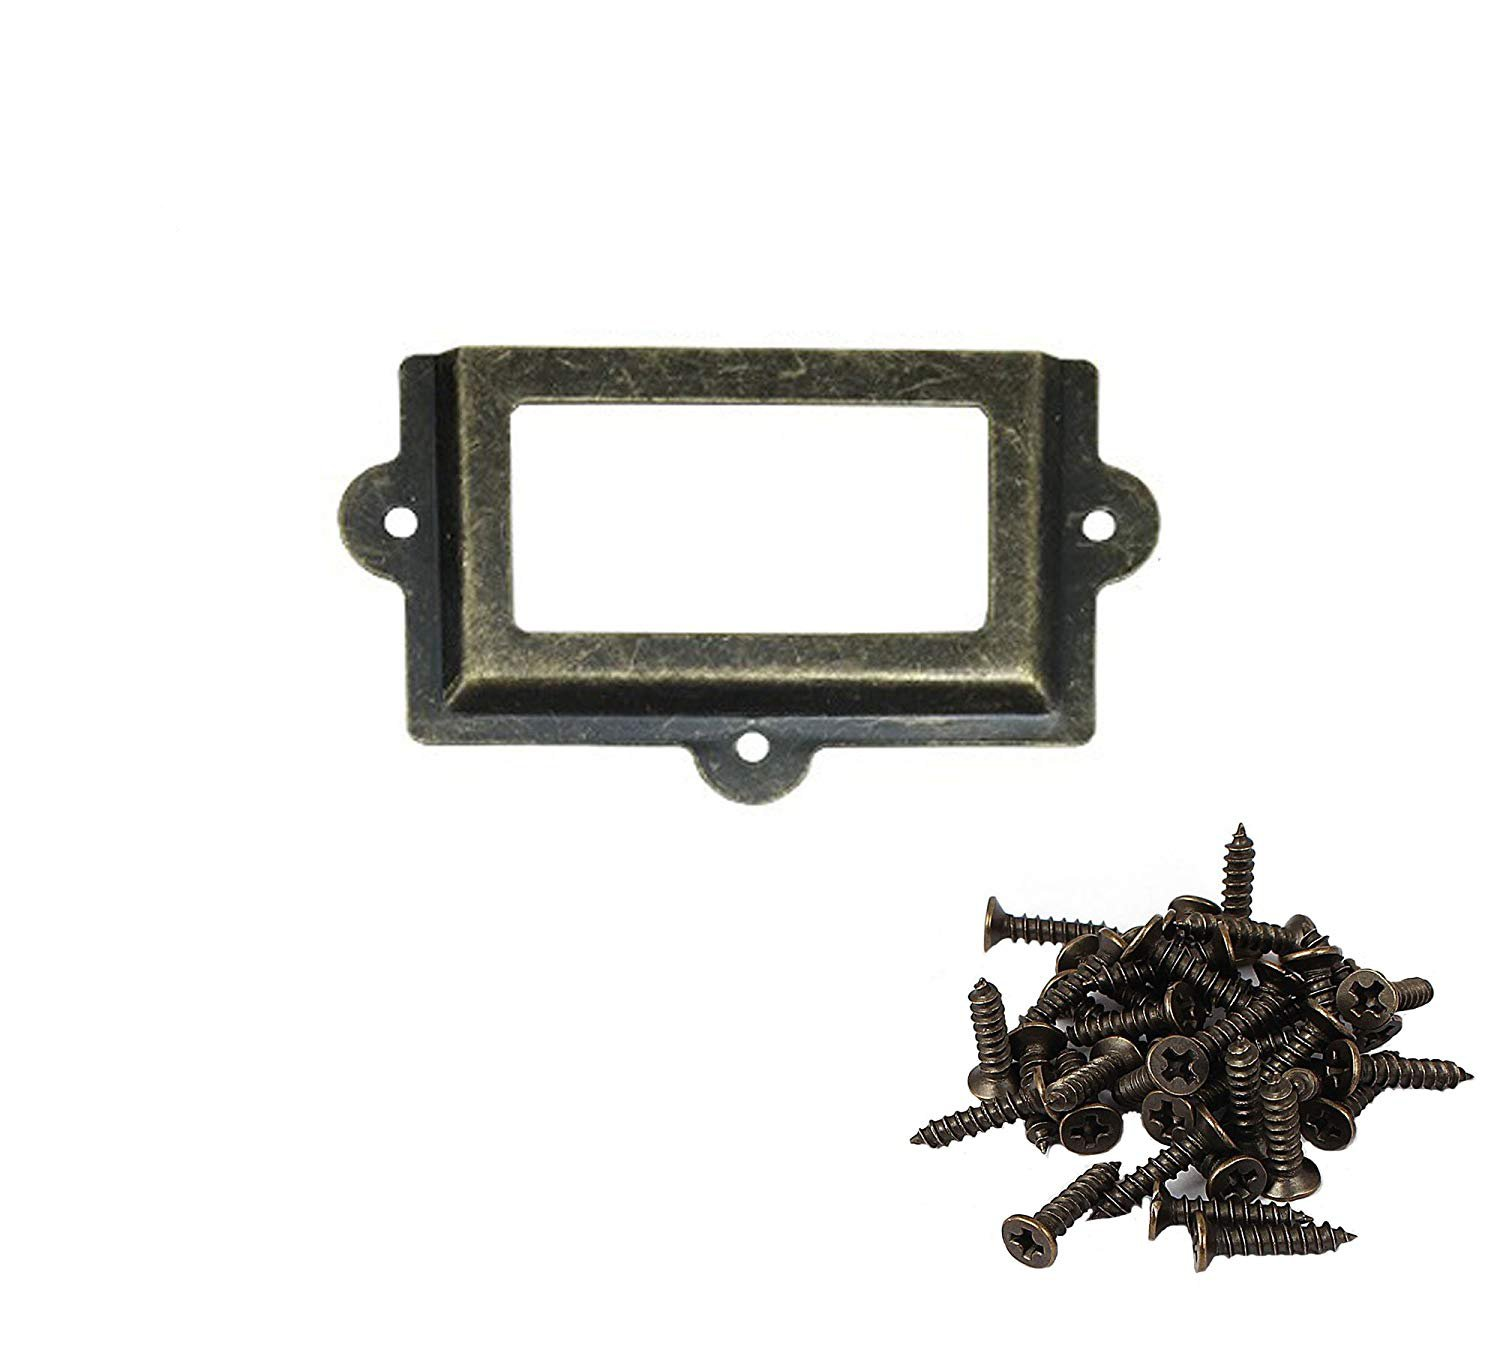 ZXHAO 107X61mm/4.21X2.4 inch Antique Cabinet Shelves Drawer Filing Cabinet Office Label Name Card Frame Holder 10pcs (Green Bronze)